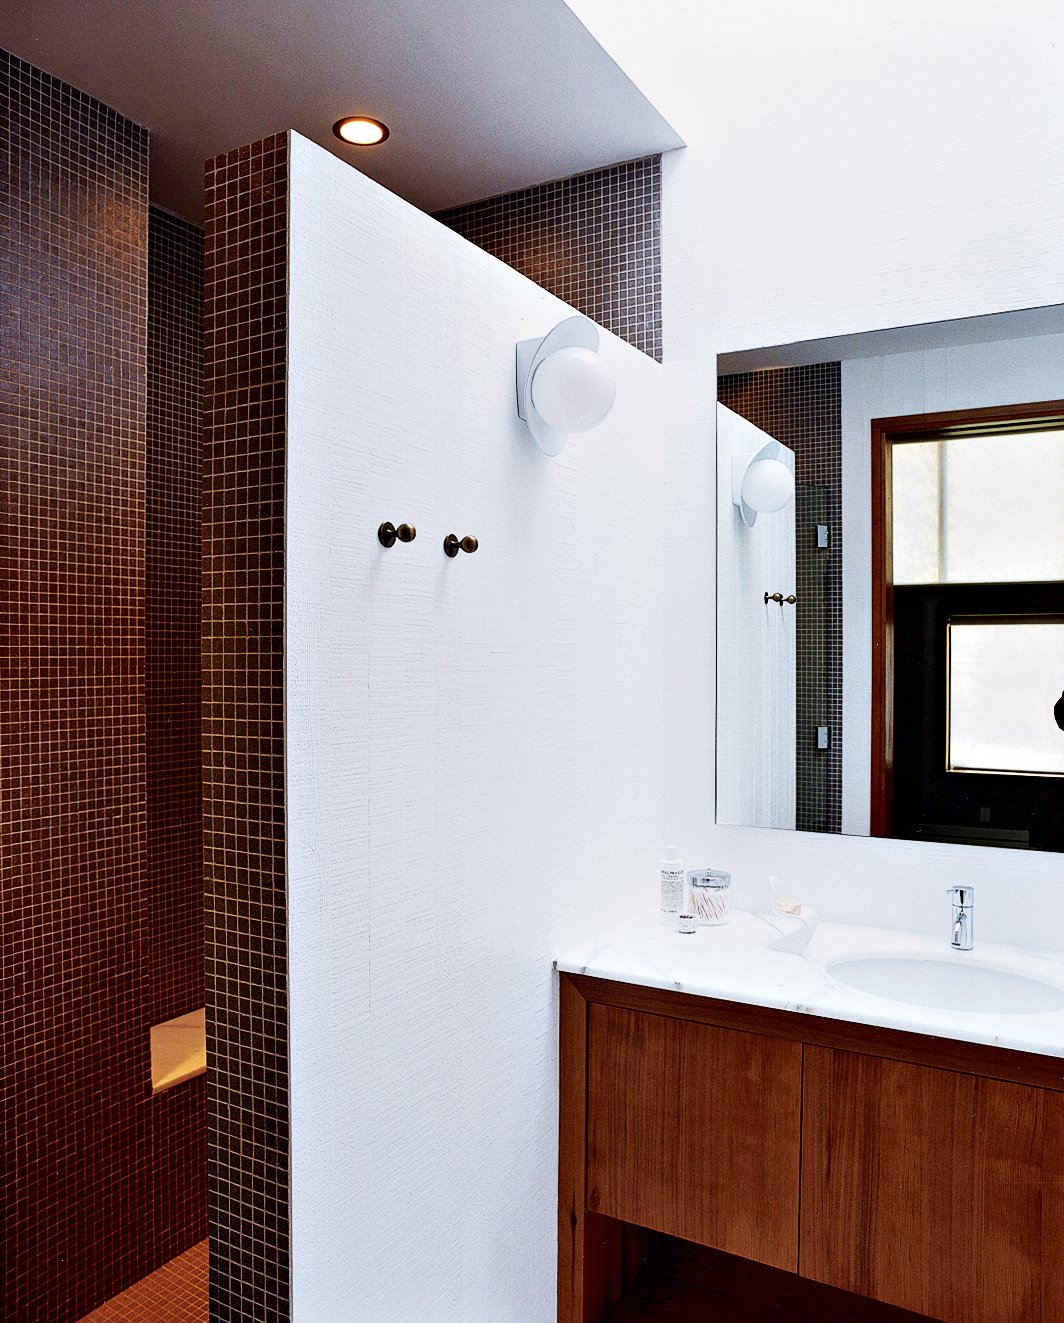 A double-size shower, clad floor-to-ceiling in tiny earth-toned tiles, was built after relocating the water heater and claiming its space. A chic yet discreet toilet is wall-hung and the tank concealed, greatly ameliorating the somewhat claustrophobic feel of the original bathroom. Tagged: Bath Room, Marble Counter, Enclosed Shower, Full Shower, Ceiling Lighting, and Ceramic Tile Wall. The Pace of Portland - Photo 5 of 6